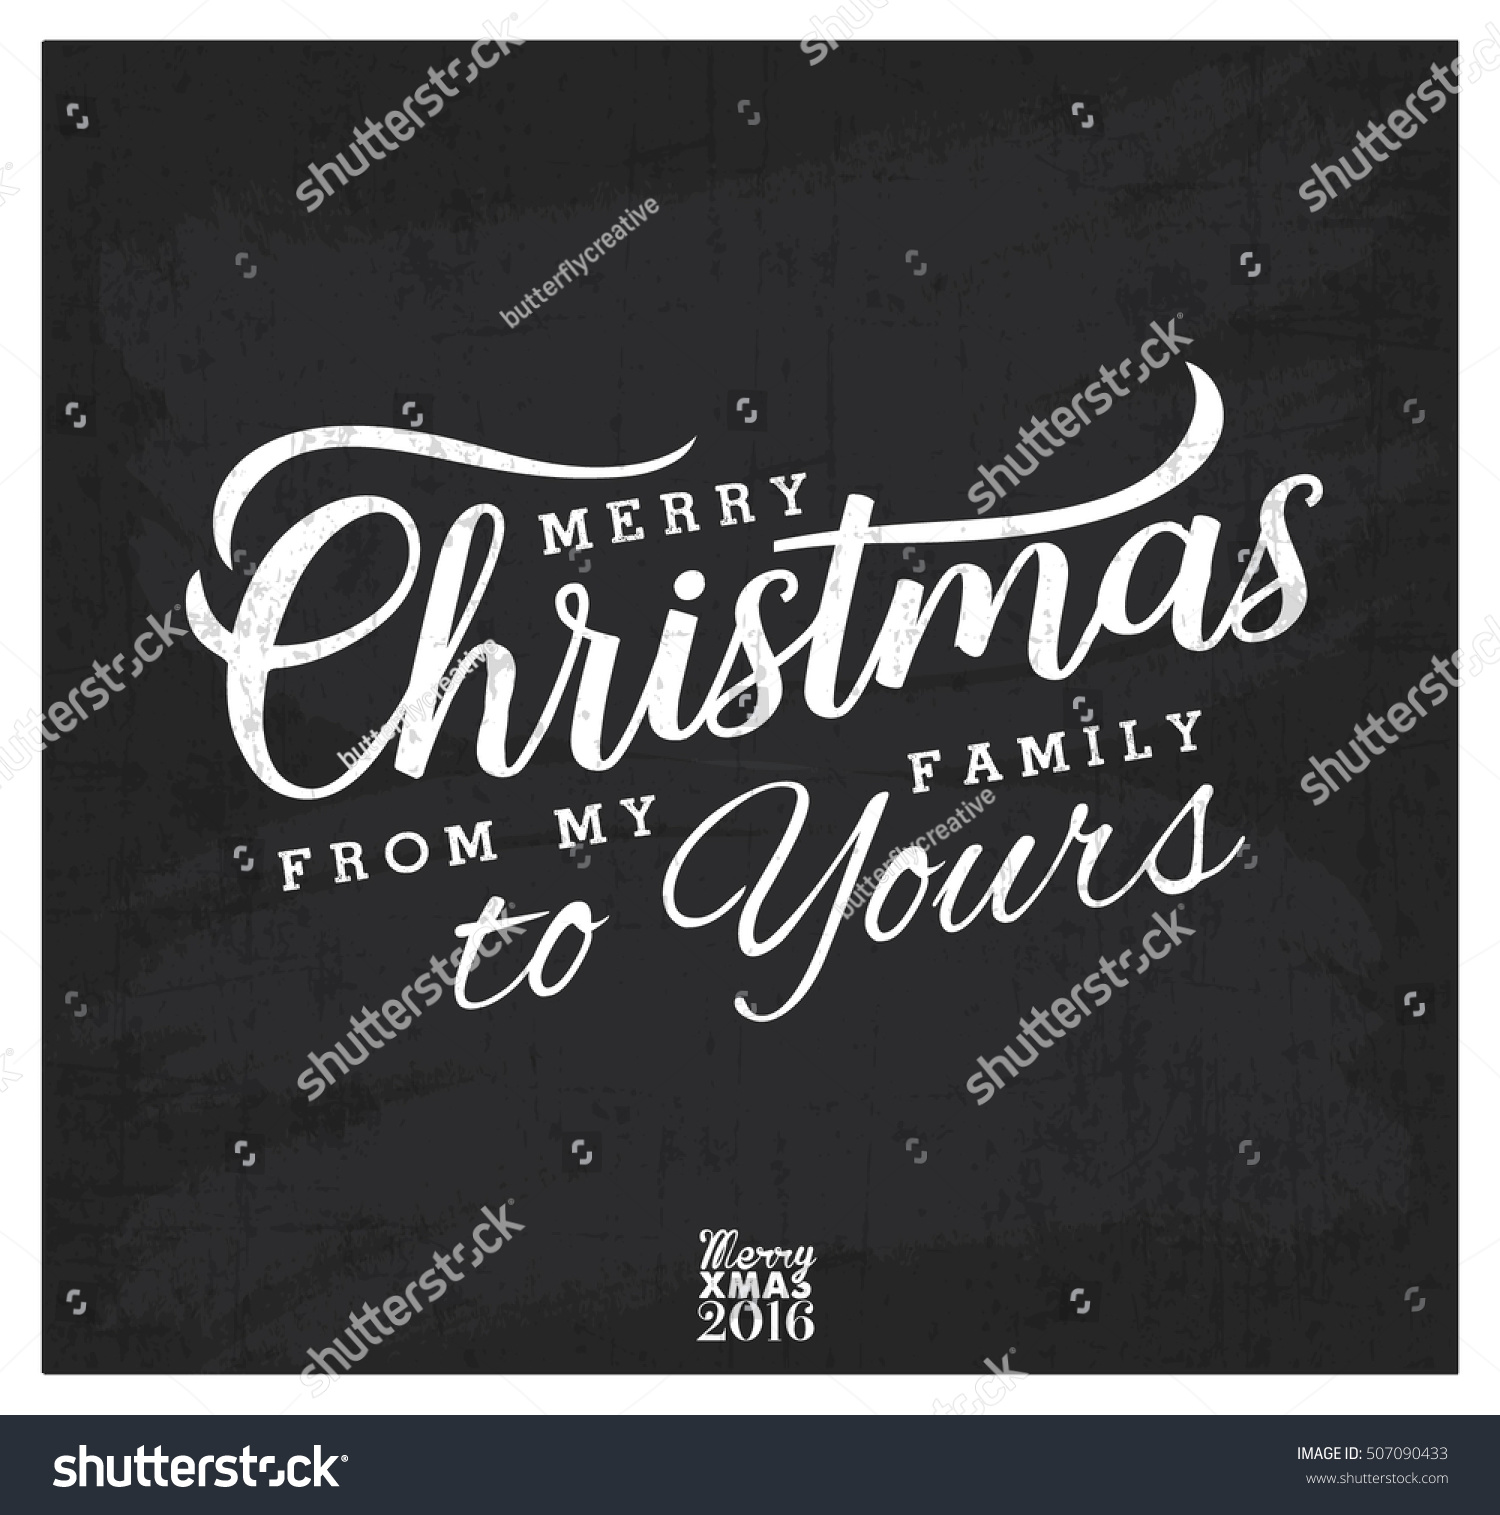 Merry Christmas My Family Yours Design Stock Vector (Royalty Free ...